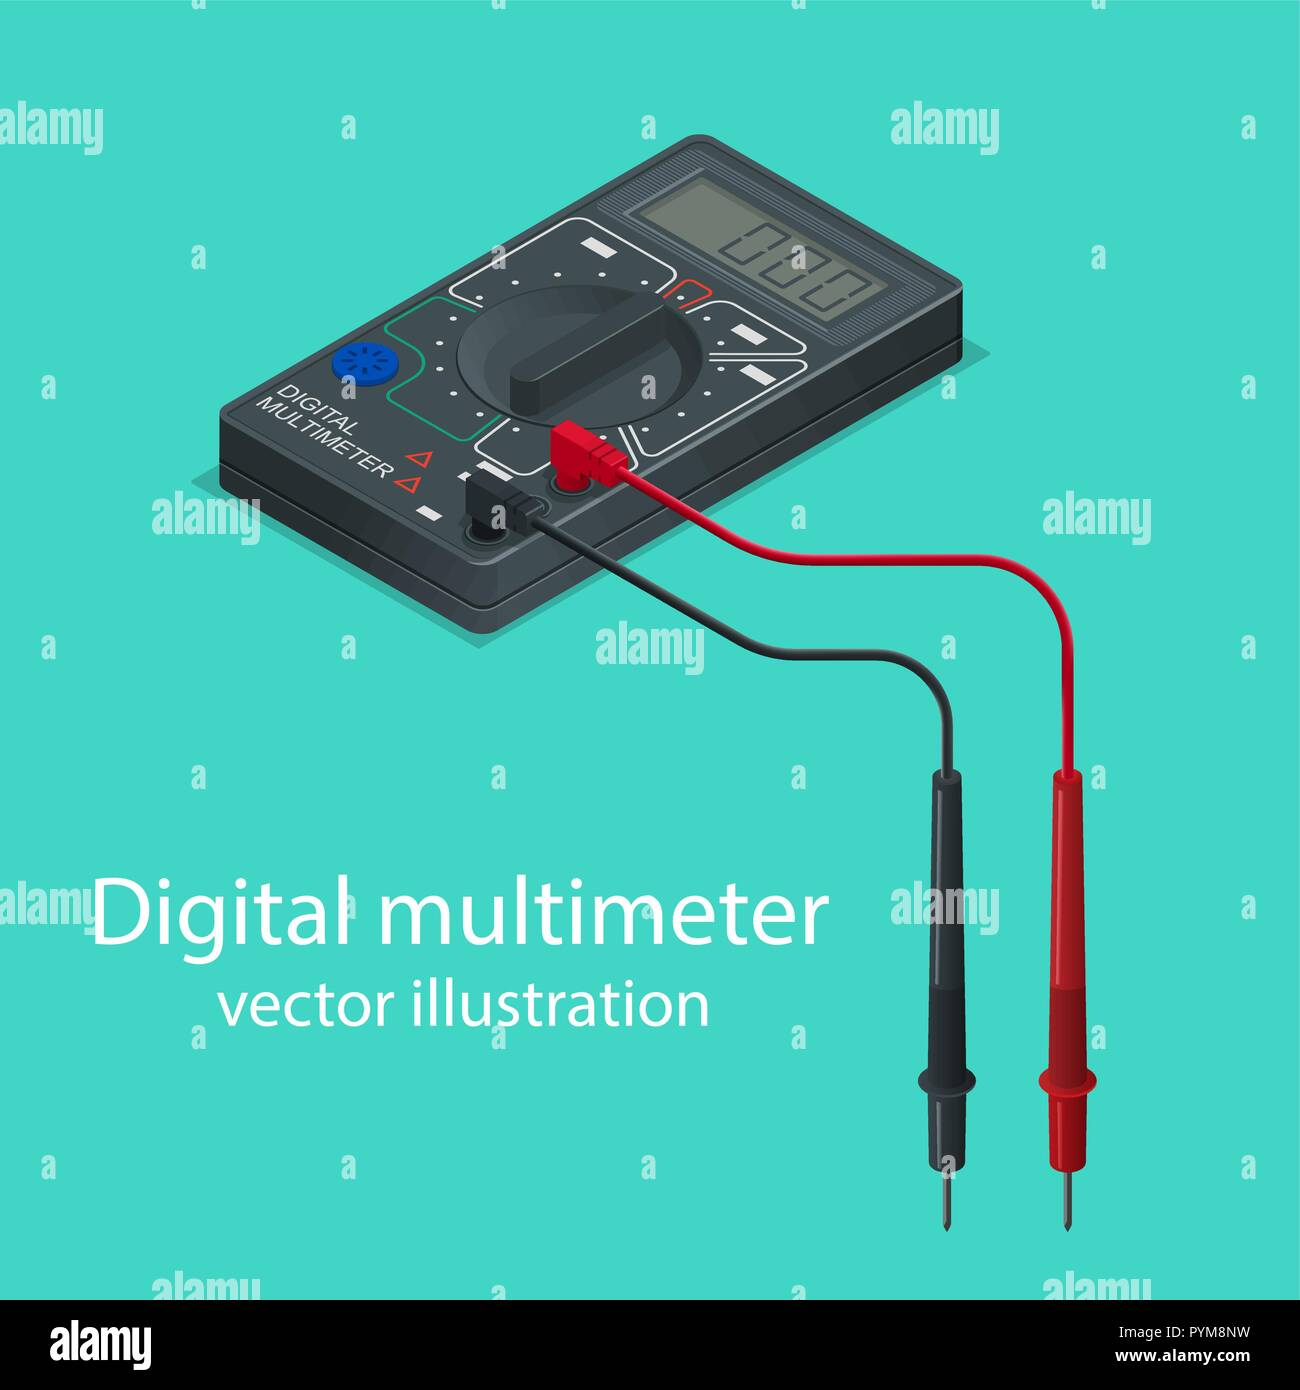 Electricity Meter Digital Stock Vector Images Alamy Schematic Diagram Of Dashboard Voltmeter Multimeter The Measuring Device In Isometric Style Realistic Illustration